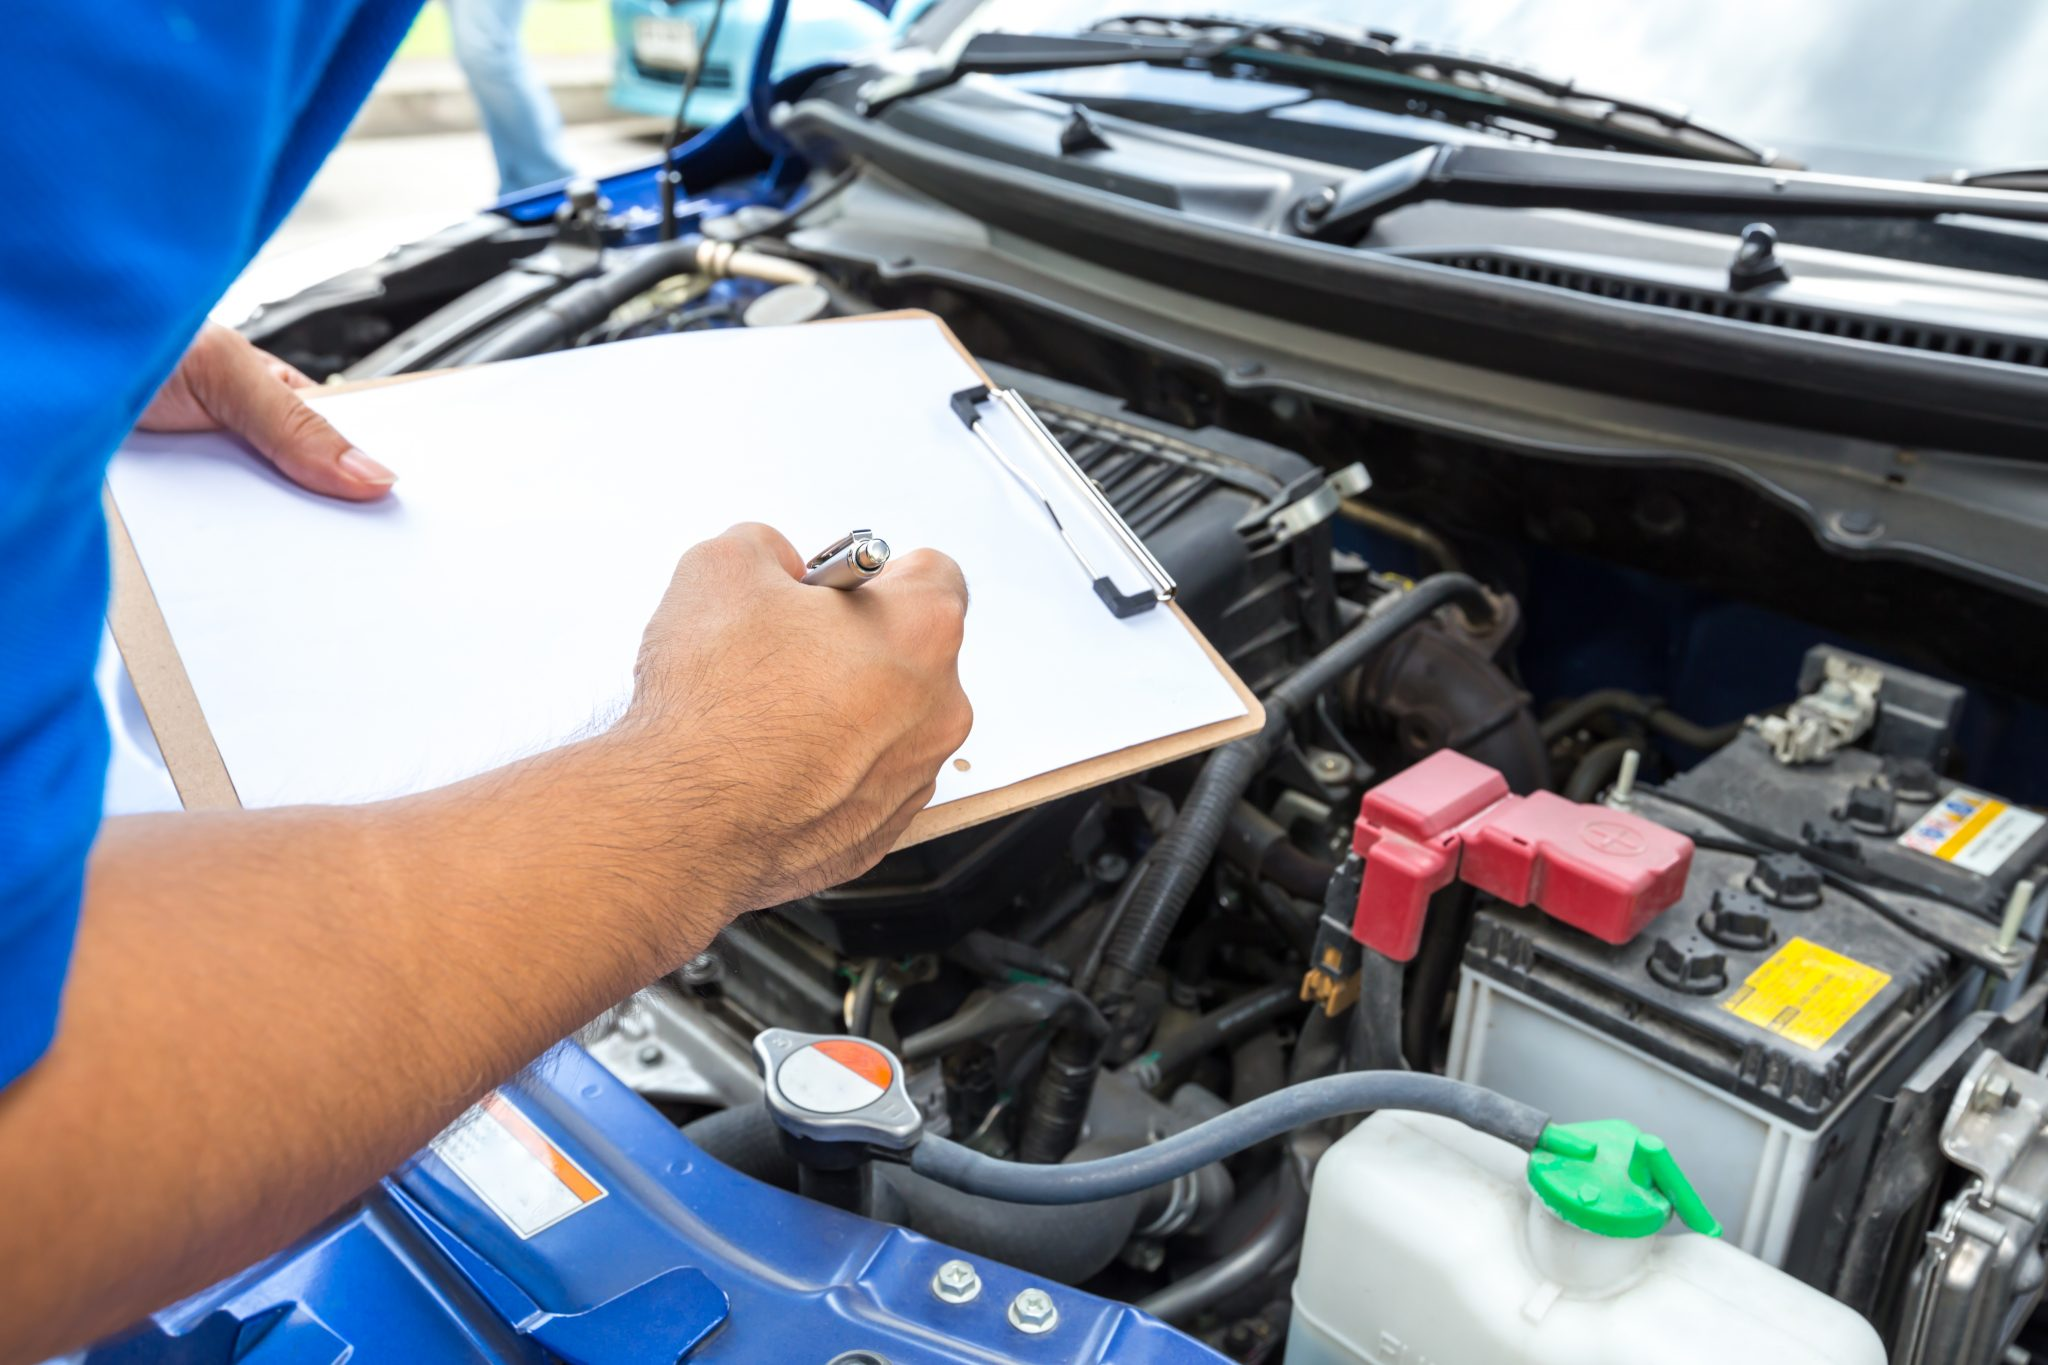 Auto Repair in Chicago with Expert Diagnostics and Affordable Car Repairs for Any Make or Model - MilitosAutoRepair.com